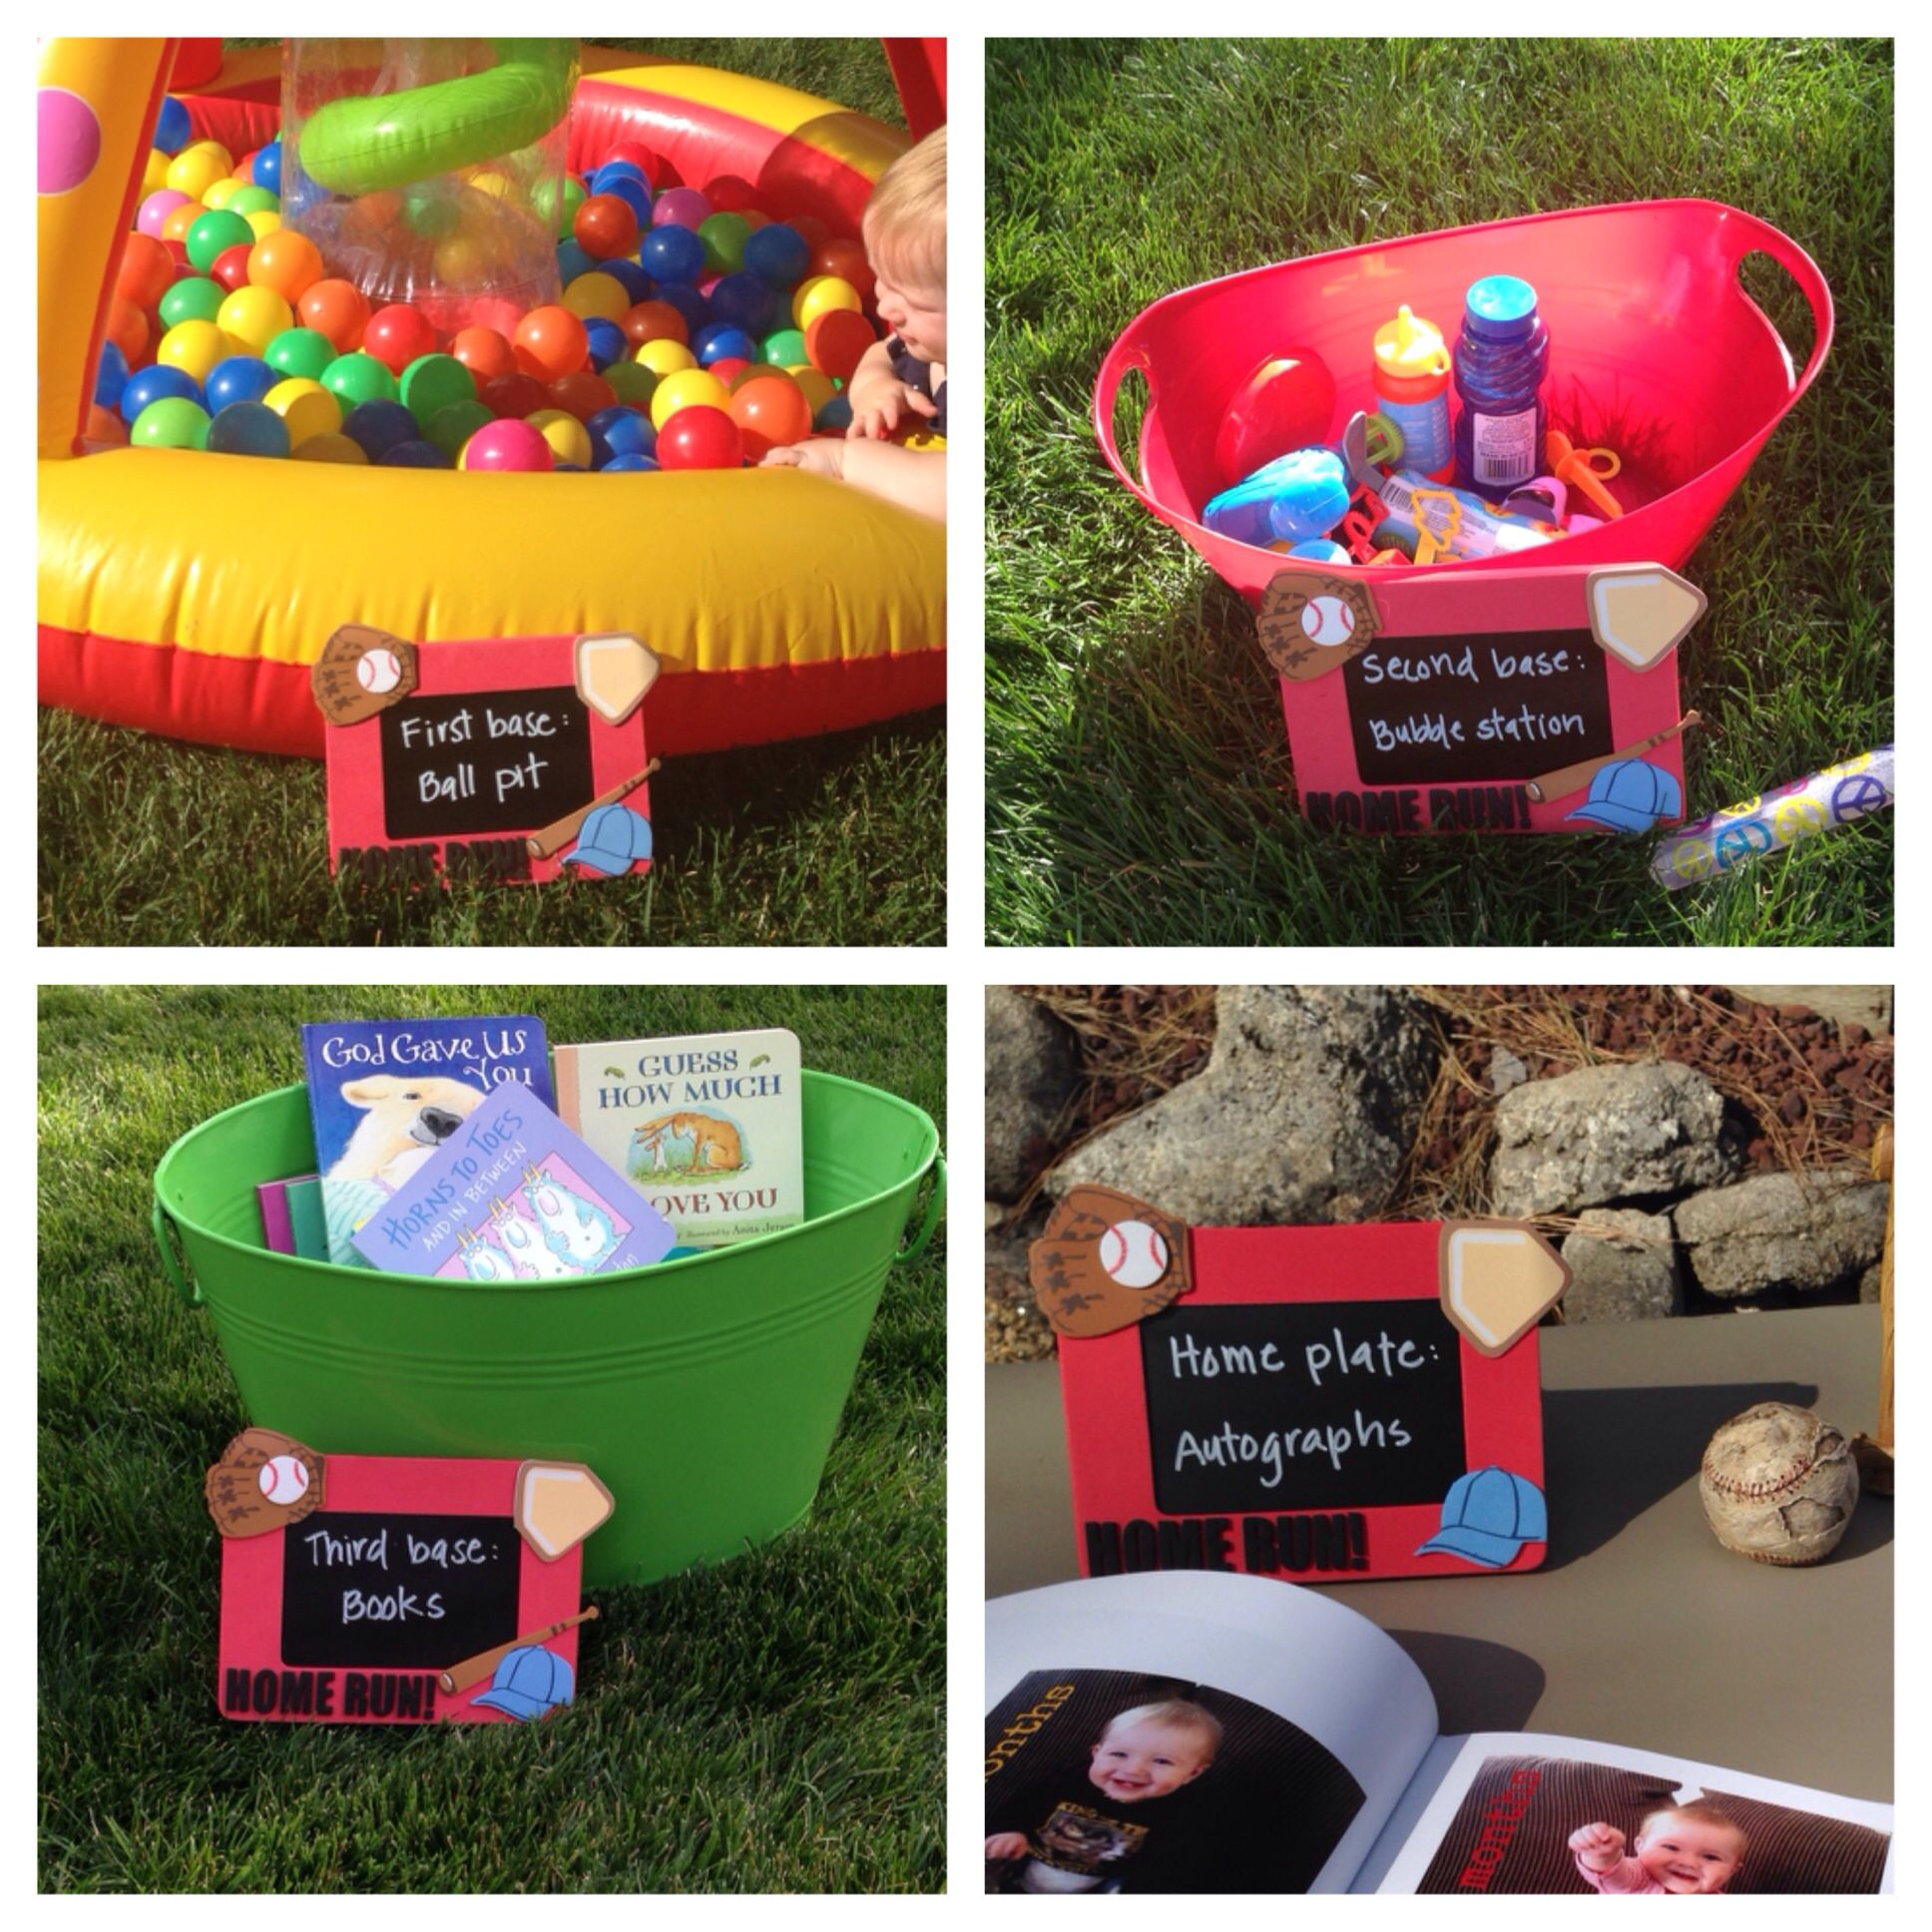 Baseball Themed First Birthday Party Activities At Each Base For